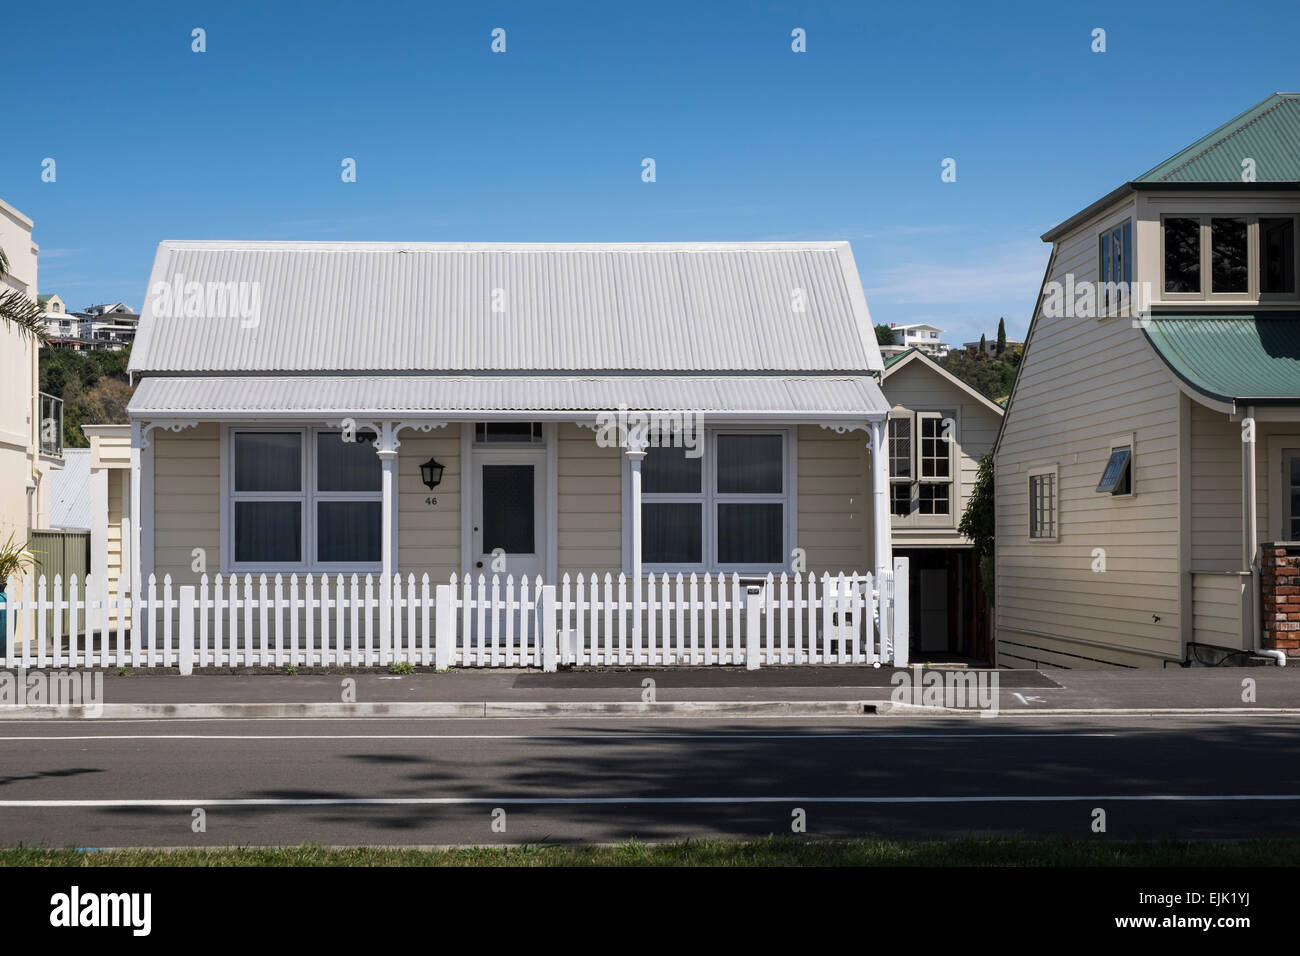 Roofing Napier Nz Amp Roofing Industries Is New